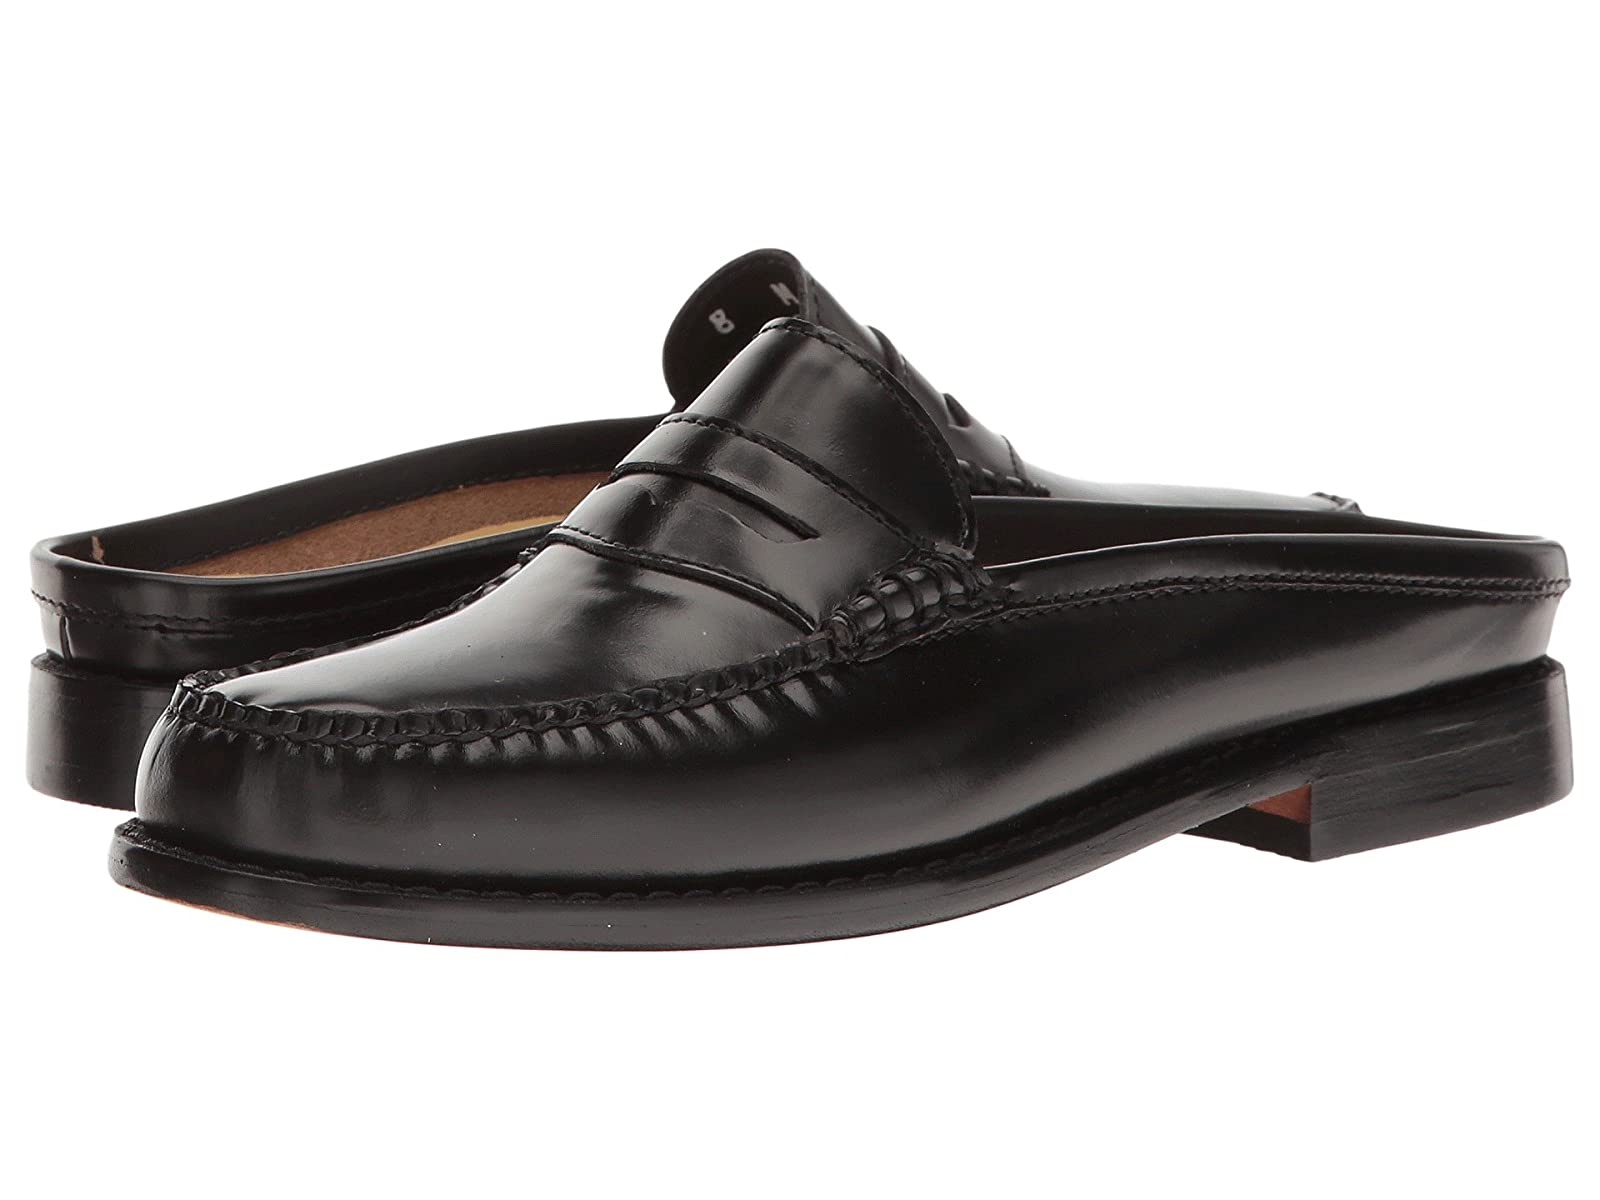 G.H. Bass & Co. Wynn WeejunsAtmospheric grades have affordable shoes